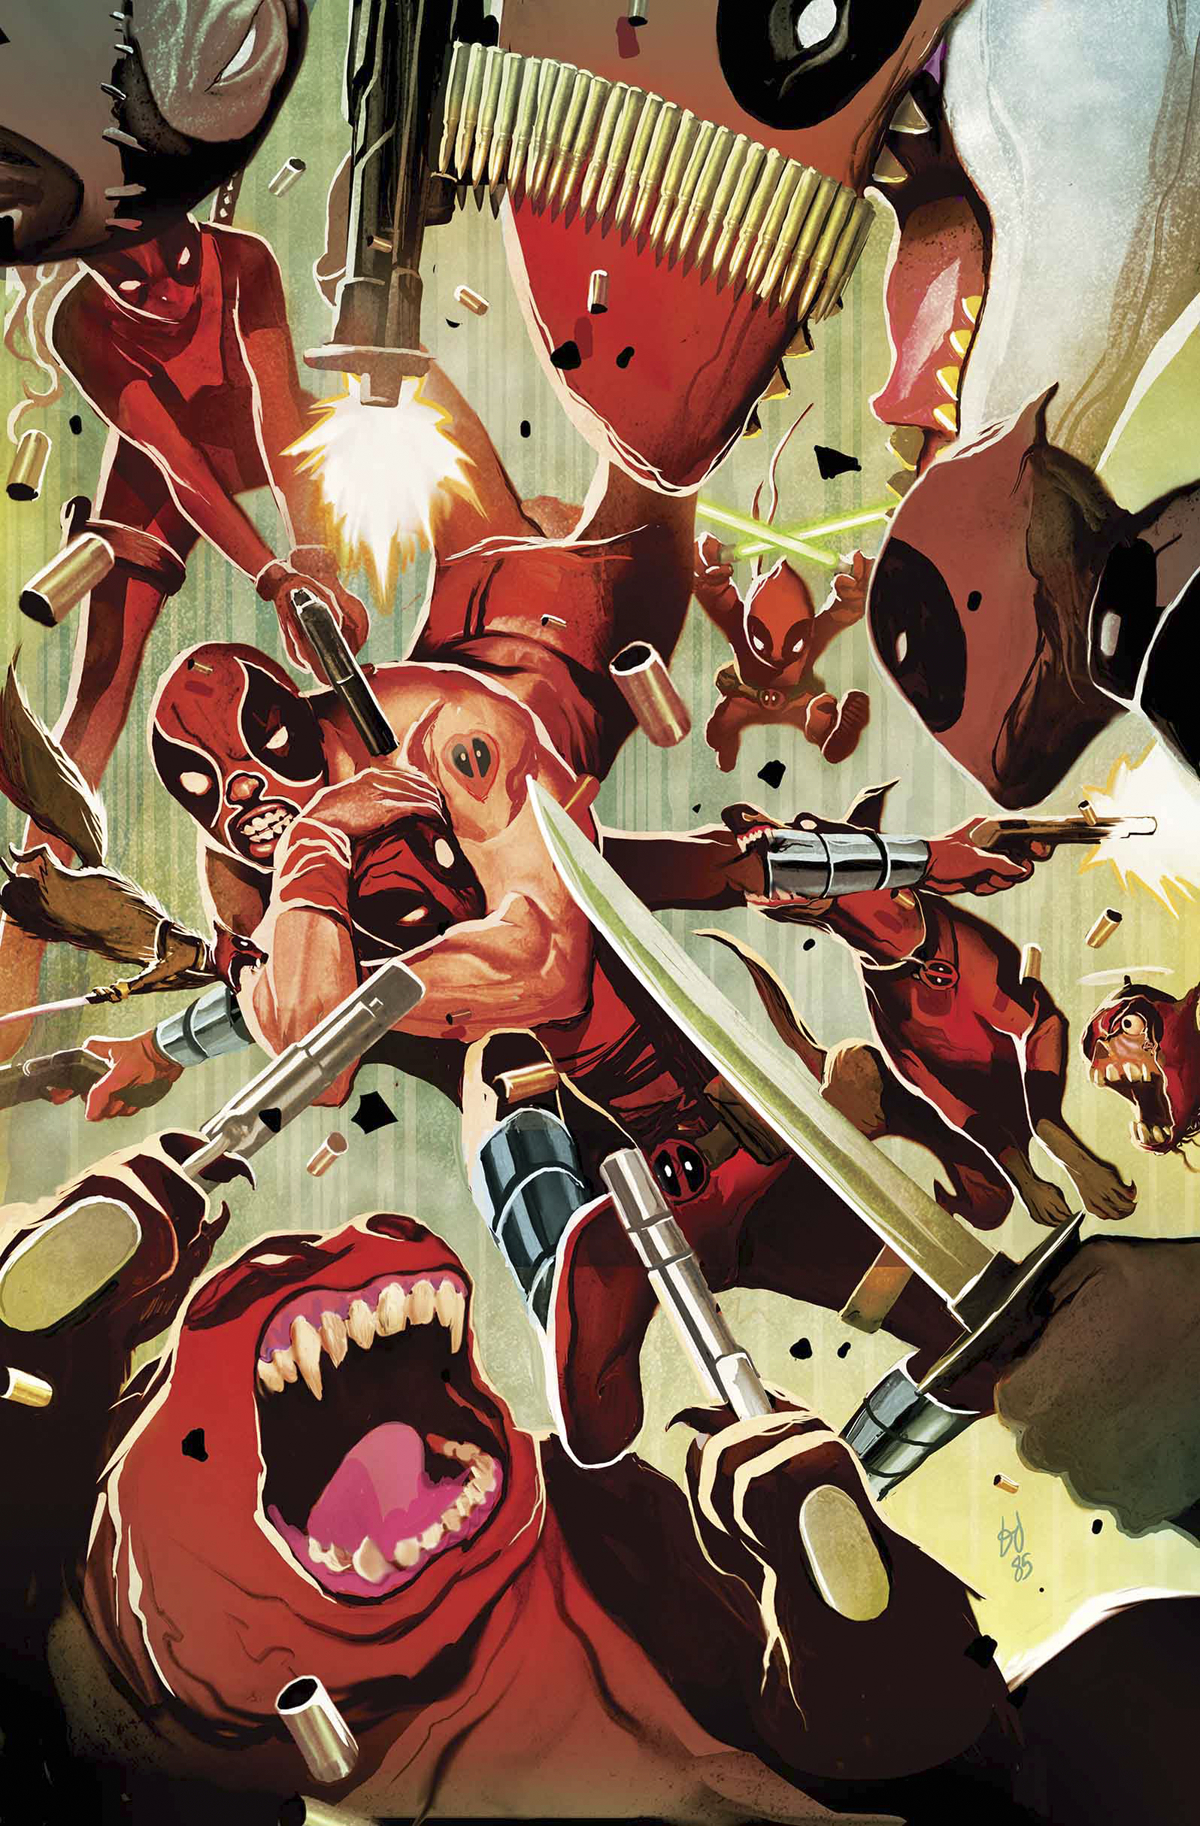 DEADPOOL KILLS DEADPOOL #3